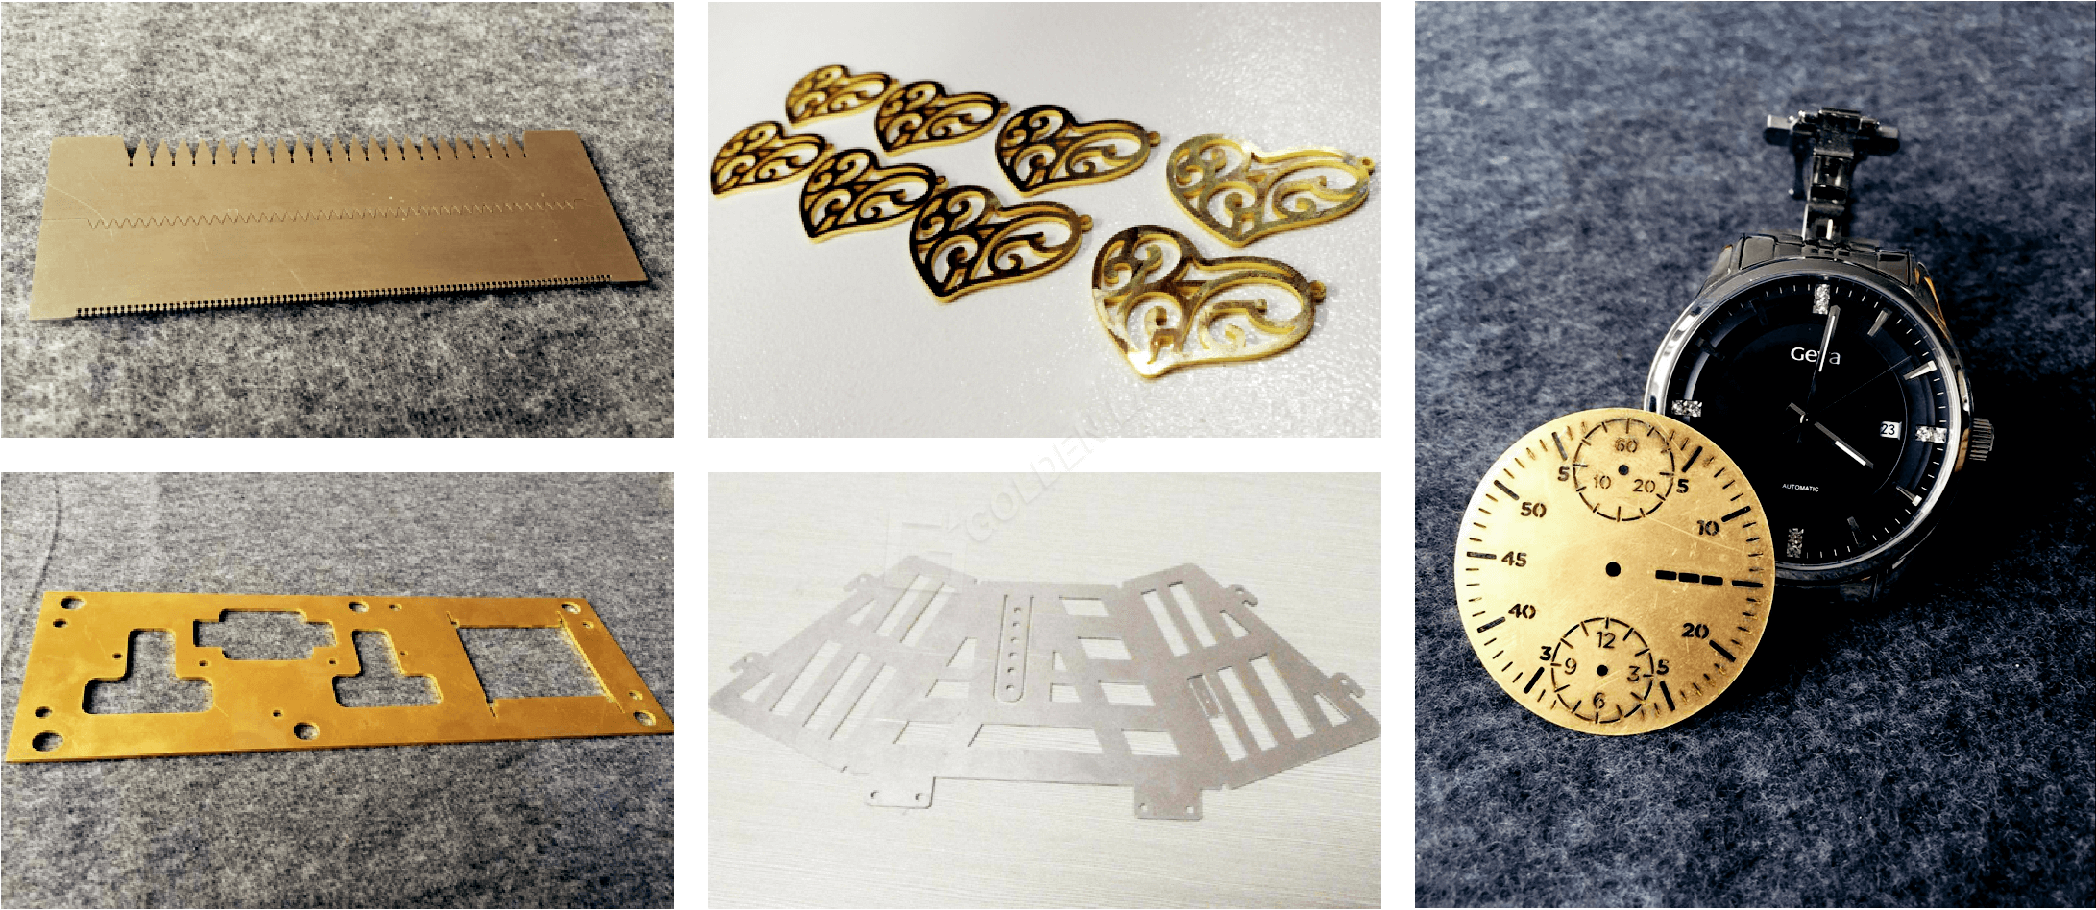 laser-cutting-machine-for-gold